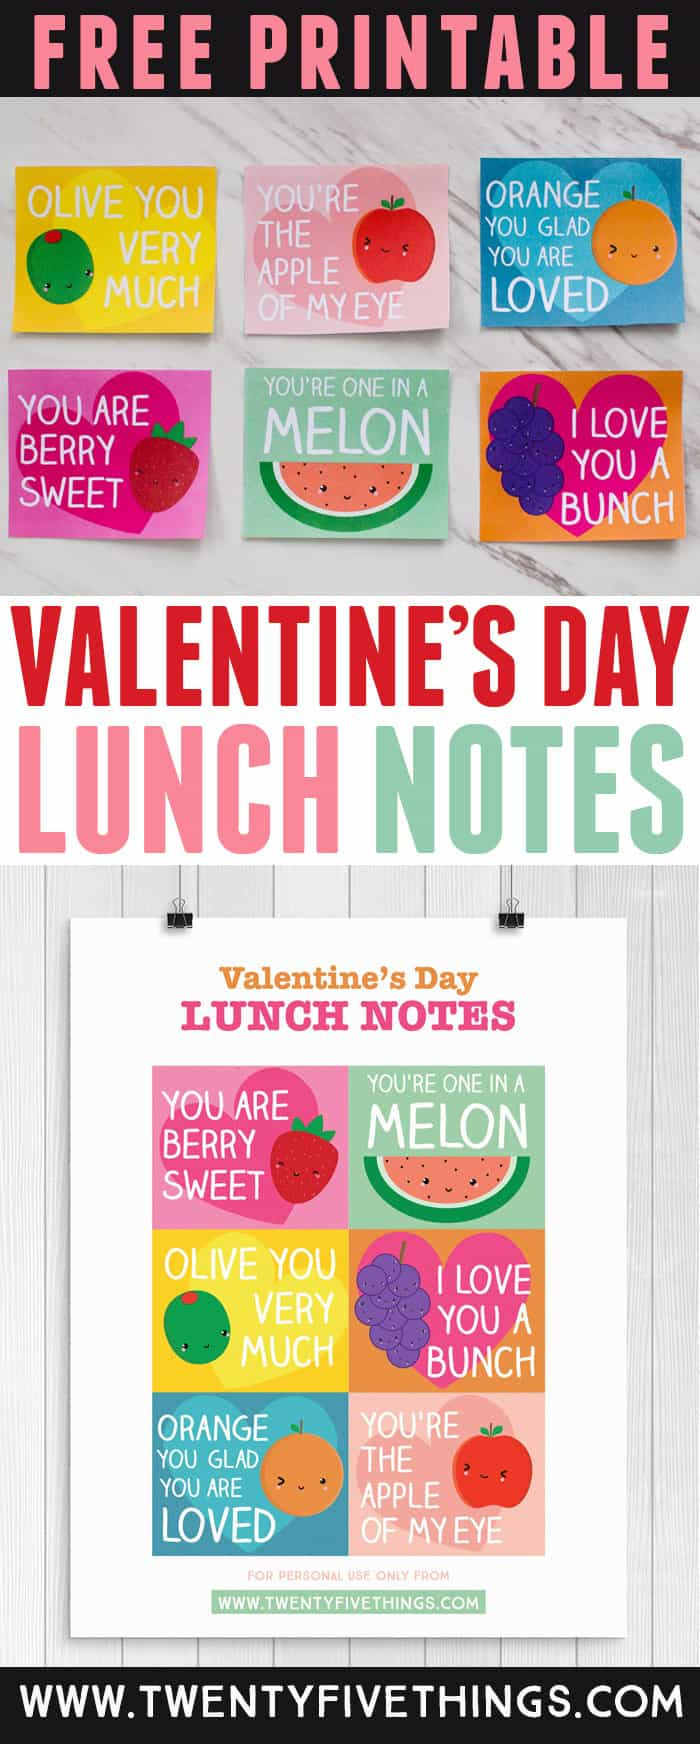 Pack some sweet lunch box notes in your kids lunch to remind them how much you love them! These lunch box notes are perfect for Valentine's Day, but can also be used any time of the year. Click through to download the free printable! #Valentines #Printables #KidsLunchIdeas